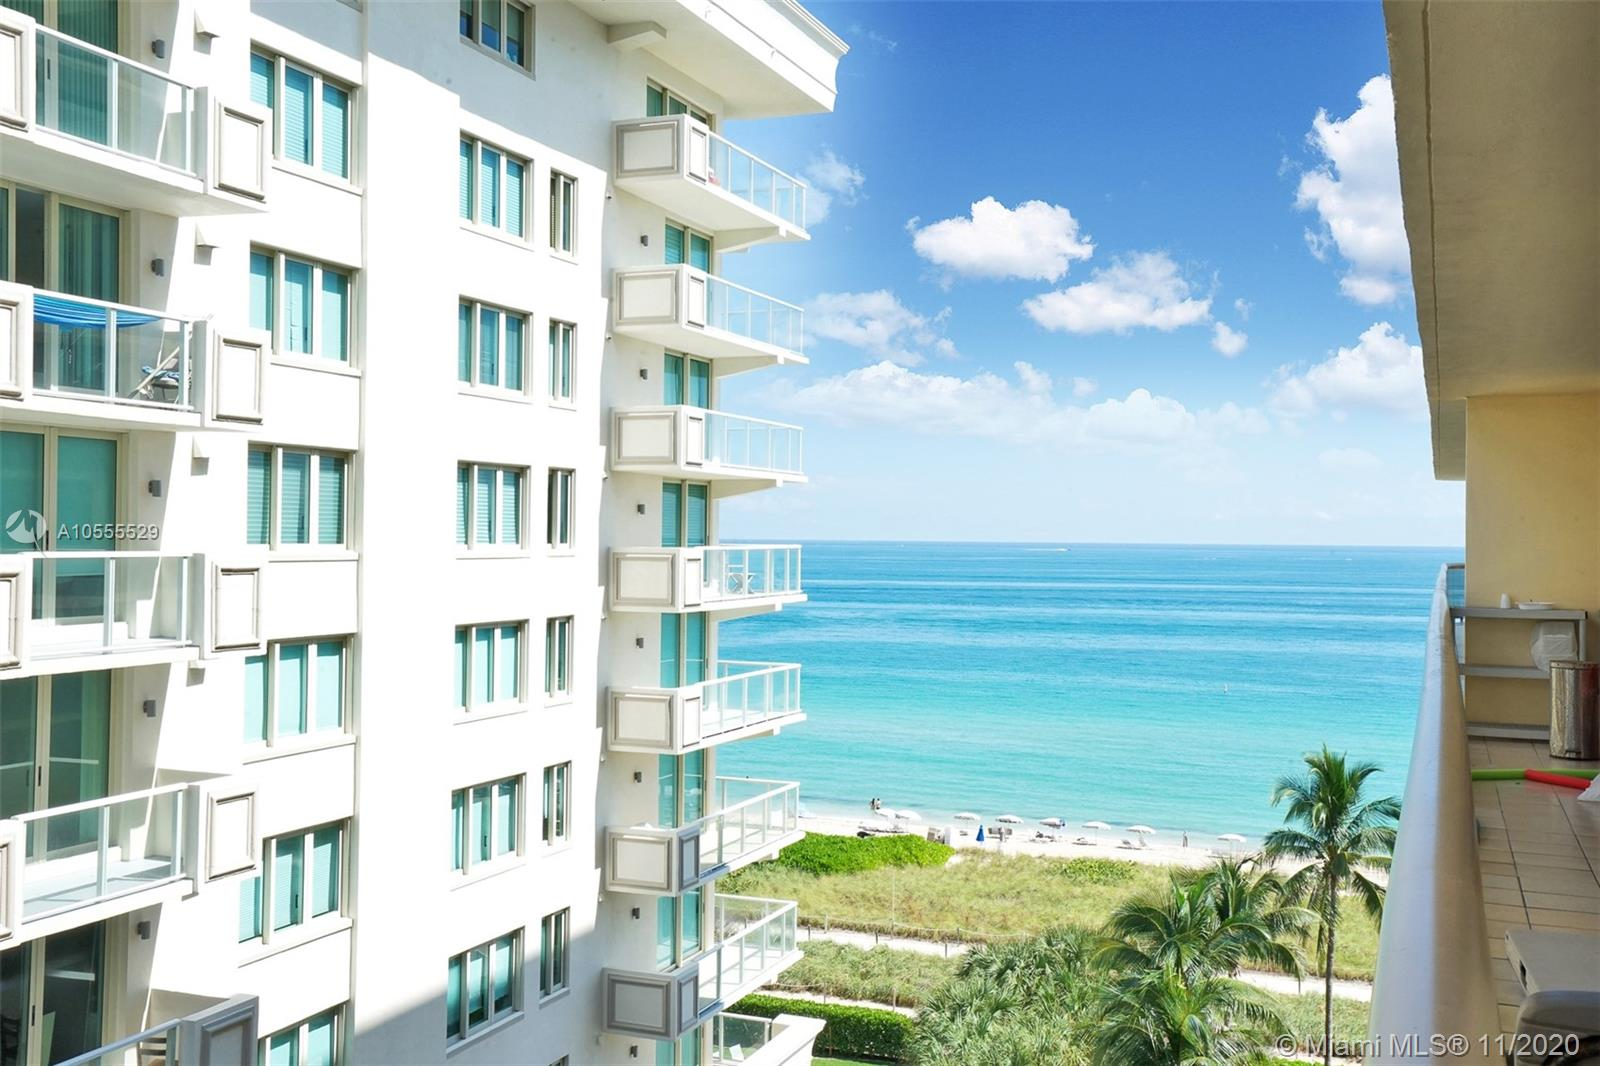 Live right on the beach in this spacious 2 bedroom, 2 bathroom waterfront unit at The Waves in Surfside! The best part of the unit is the floor to ceiling glass doors that lead to the enormous balcony with spectacular views of the ocean and bay. Both bedrooms and living room have access to the balcony.  This 1,260 SF unit offers tile floors throughout, updated kitchen with granite countertops, split bedrooms, and separate washer/dryer room. Building offers great amenities, including: valet parking, 24 hour concierge, fitness room, pool/spa area, sauna, direct beach access, and much more. Within walking distance to Bal Harbour Shops, grocery stores, award winning restaurants, and Places of Worship!